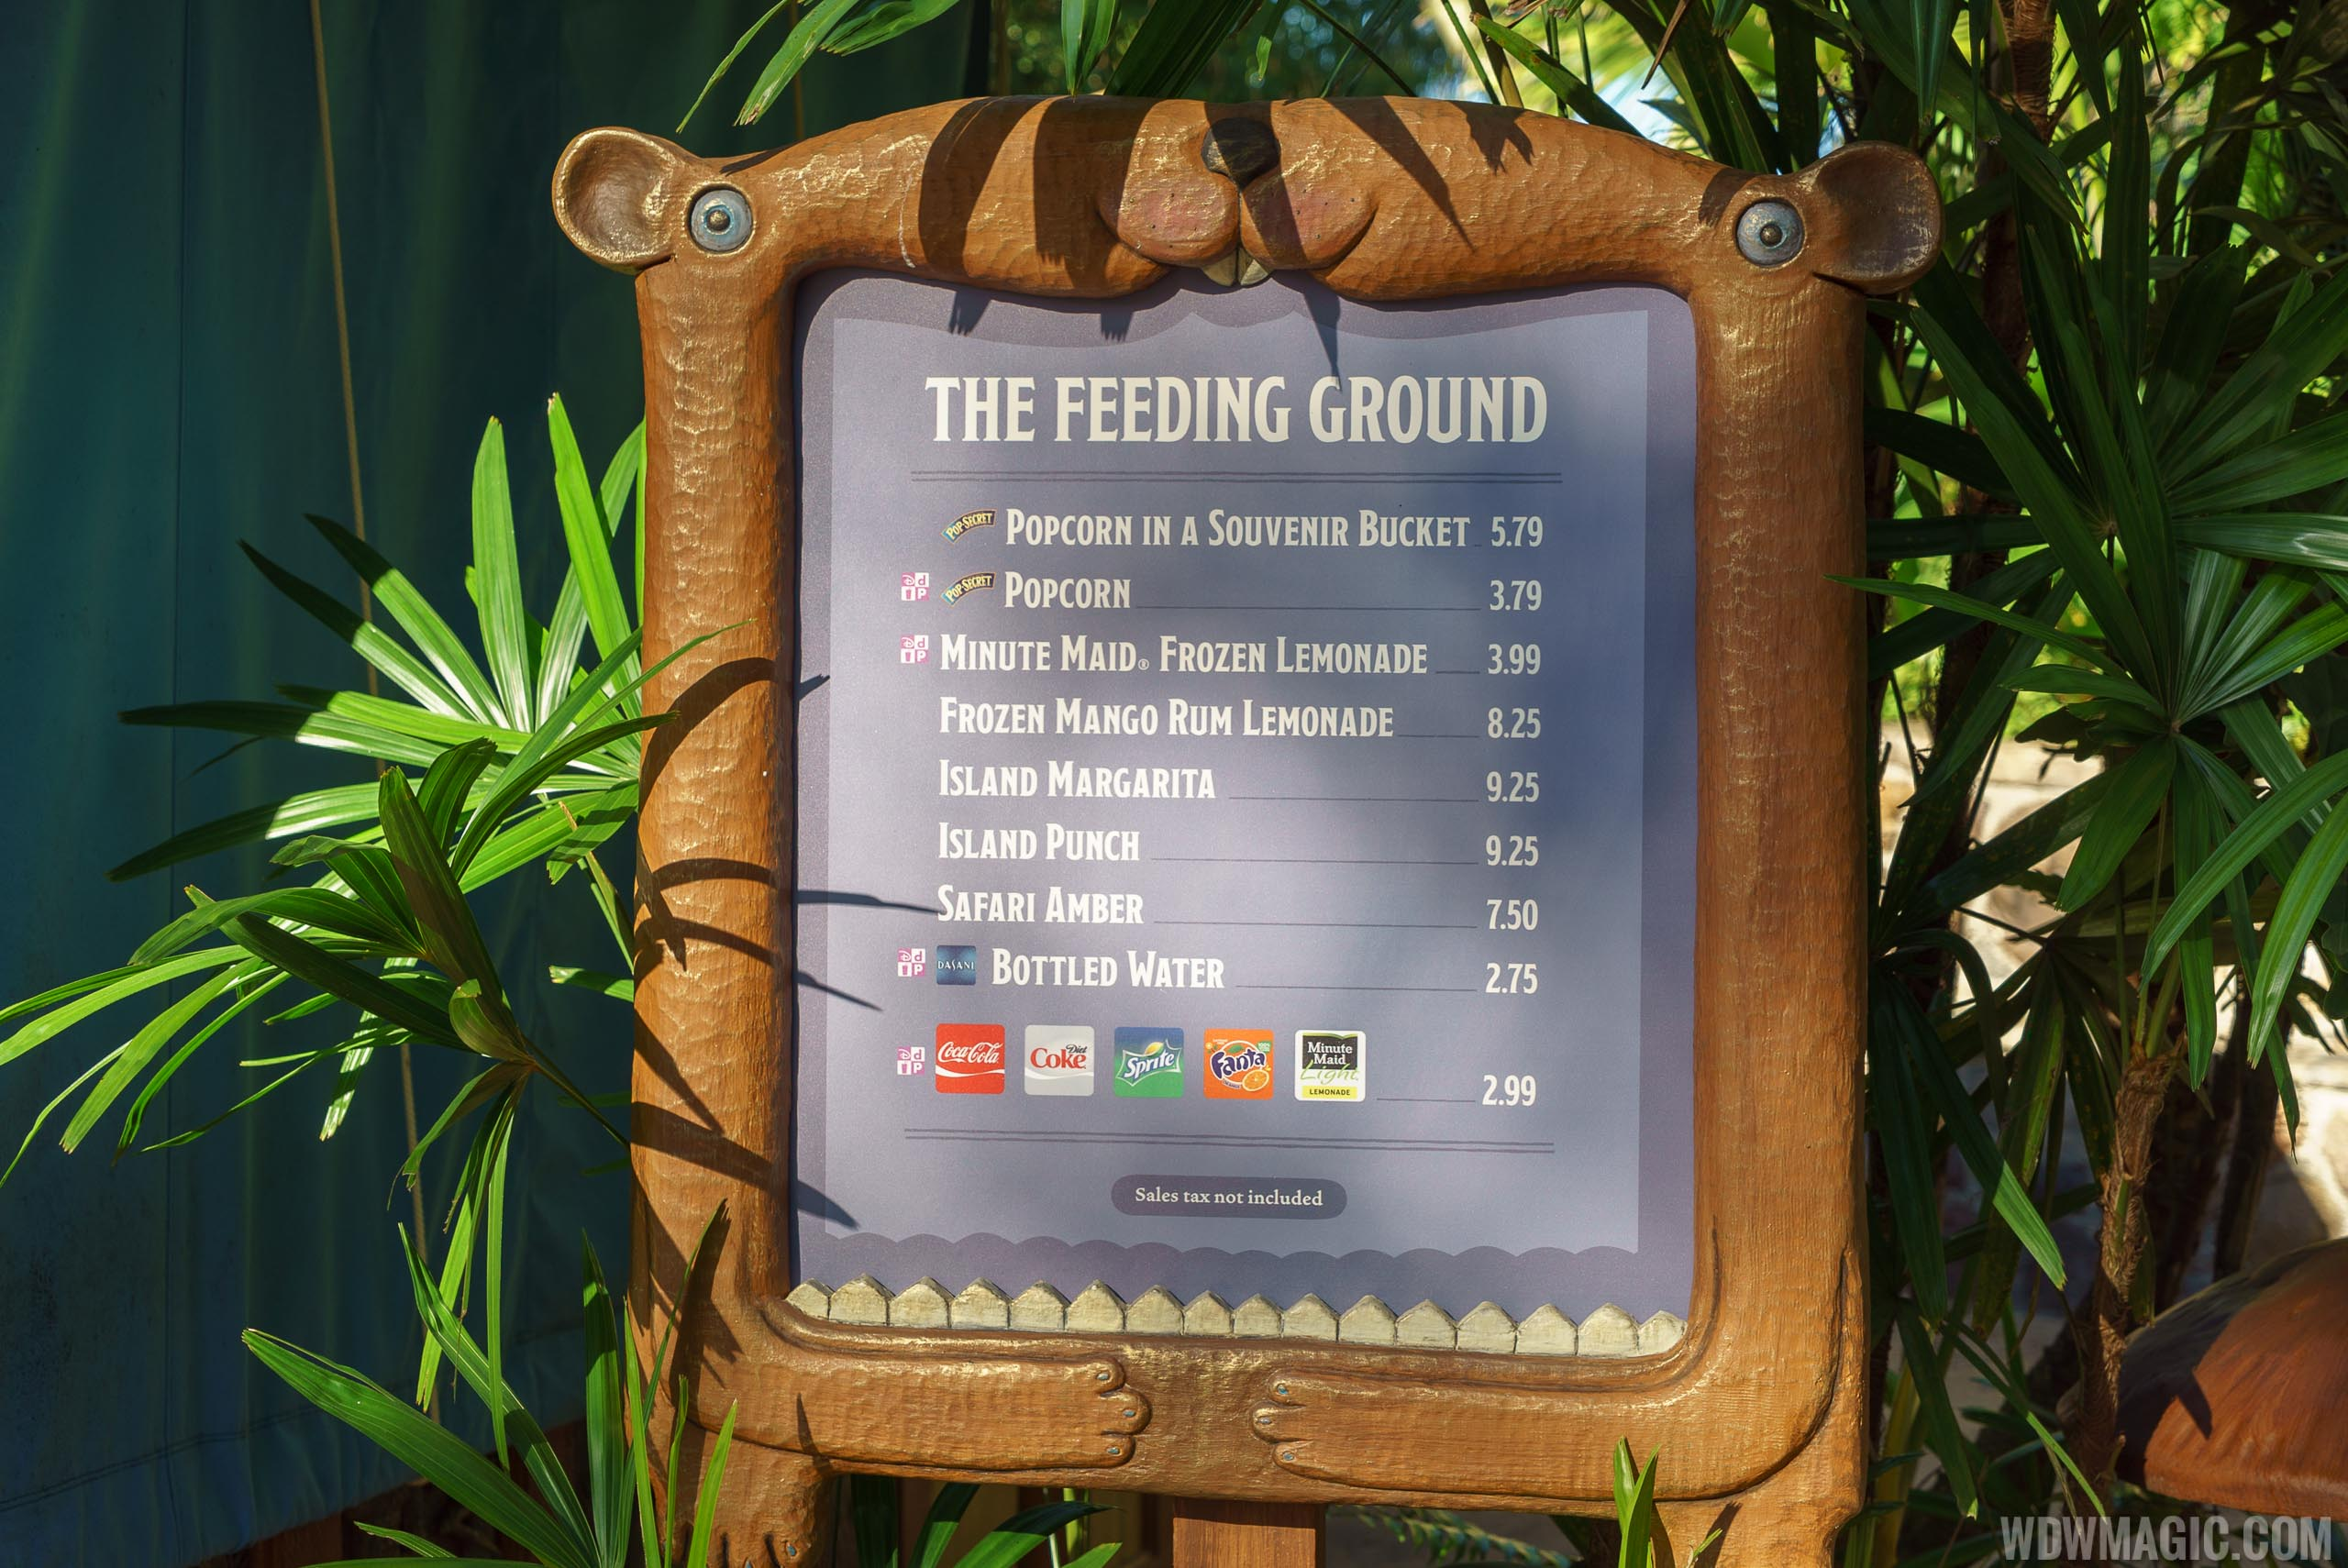 The Feeding Ground overview